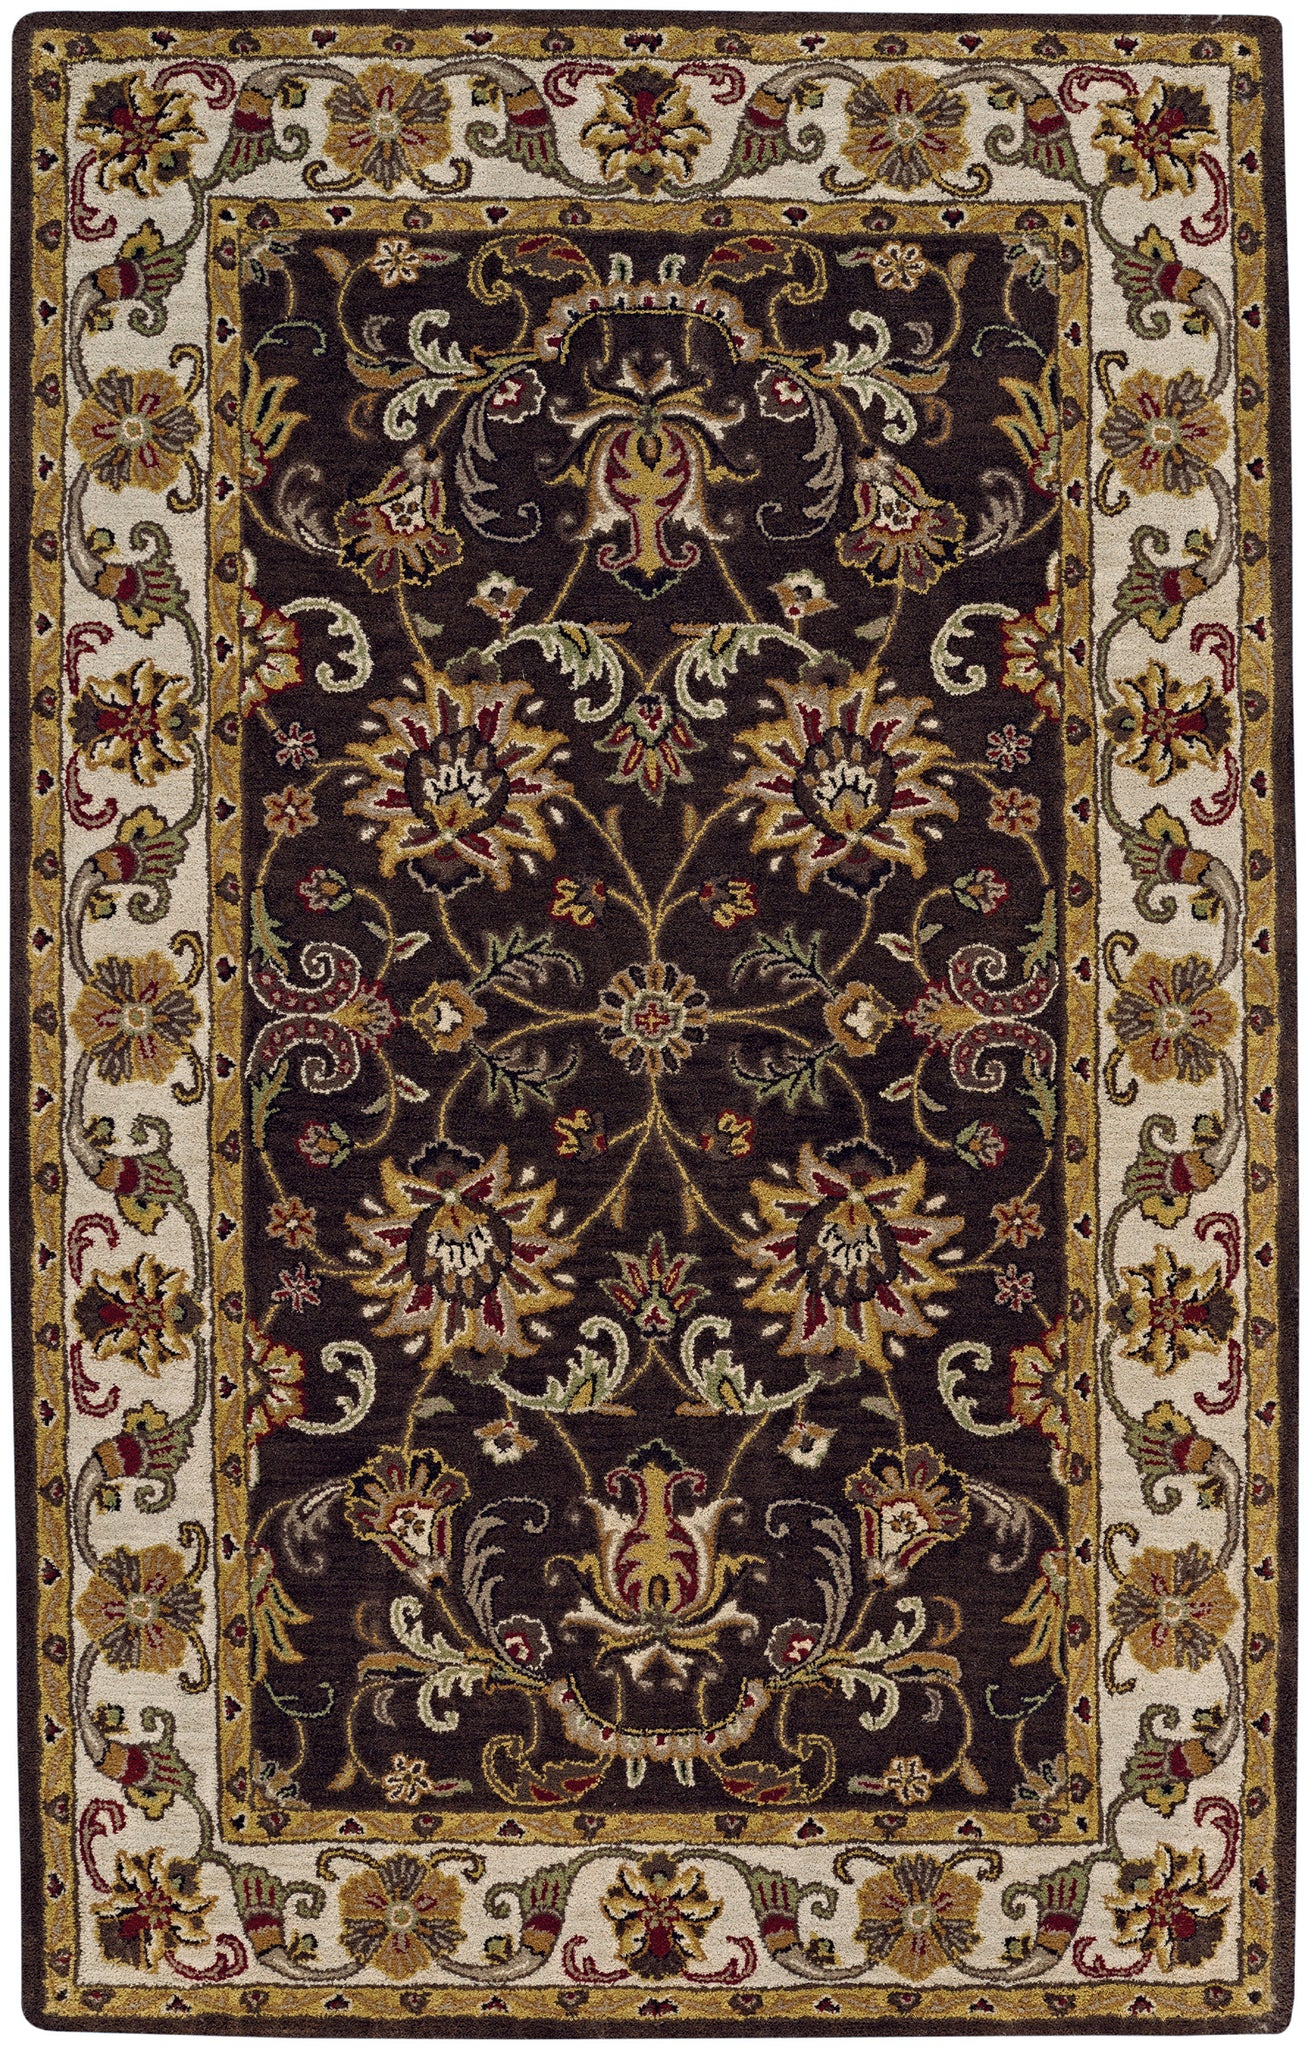 Capel Guilded 9205 Cocoa 760 Area Rug main image